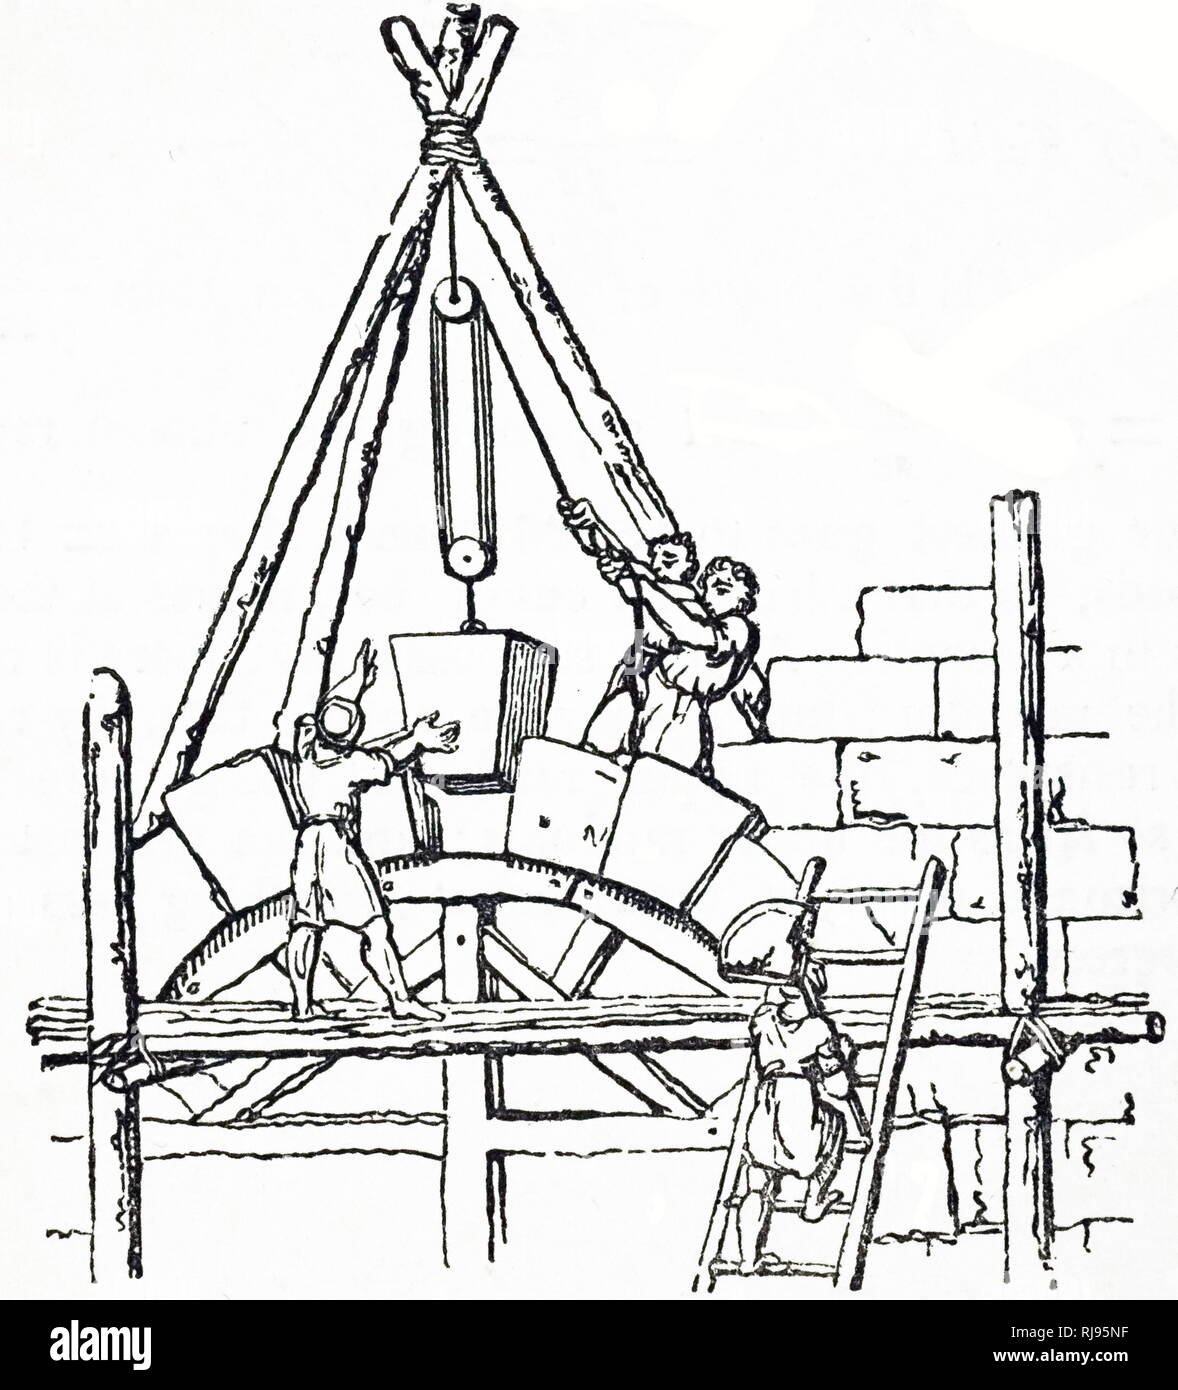 keystone arch diagram e bike throttle wiring stock photos images alamy illustration showing builders lifting and manoeuvring large a for an england 1836